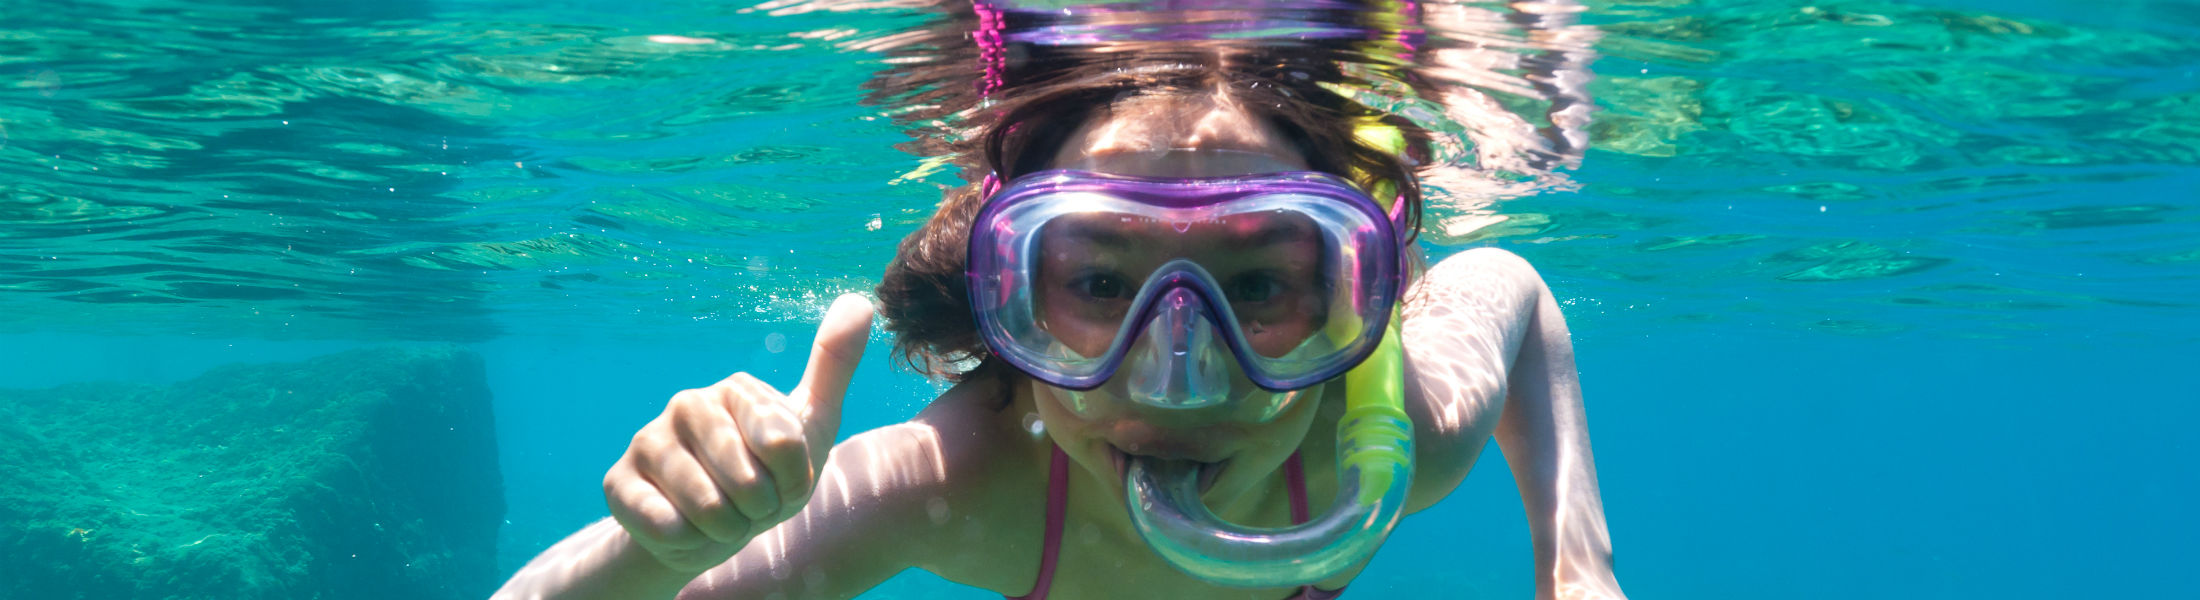 little girl with mask exploring underwater in the Mediterranean Sea